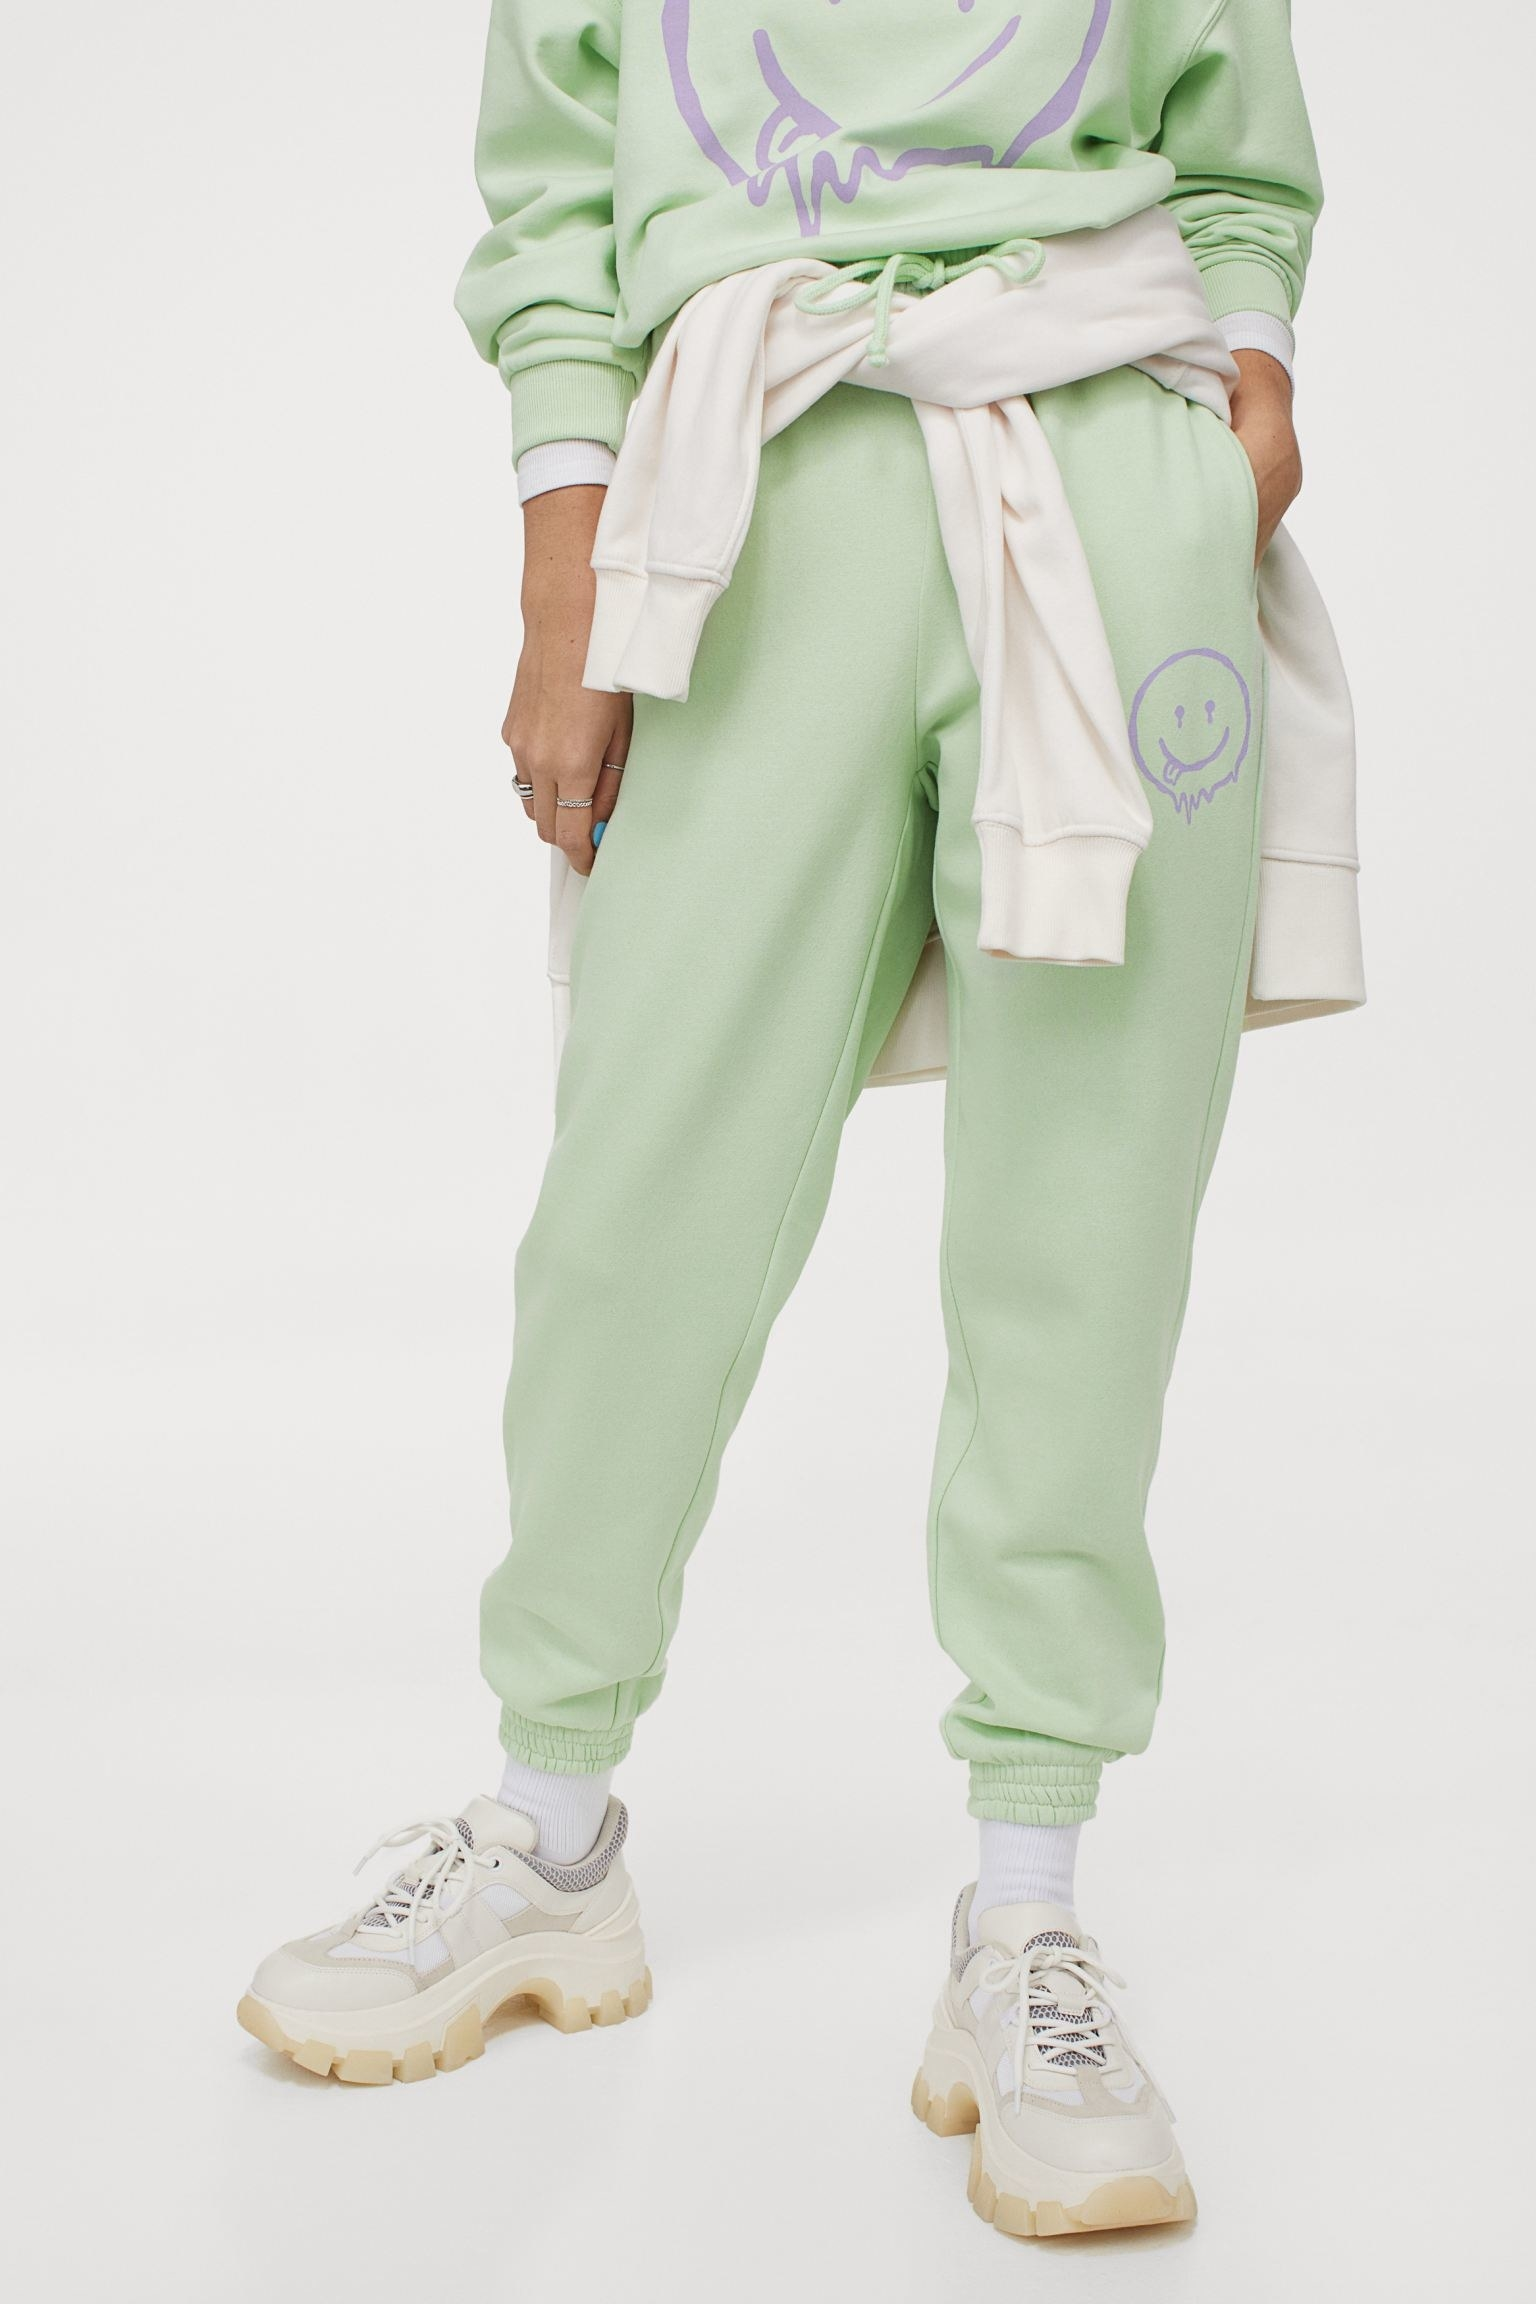 Model wearing the mint green sweatpants with a purple smiley face on the side